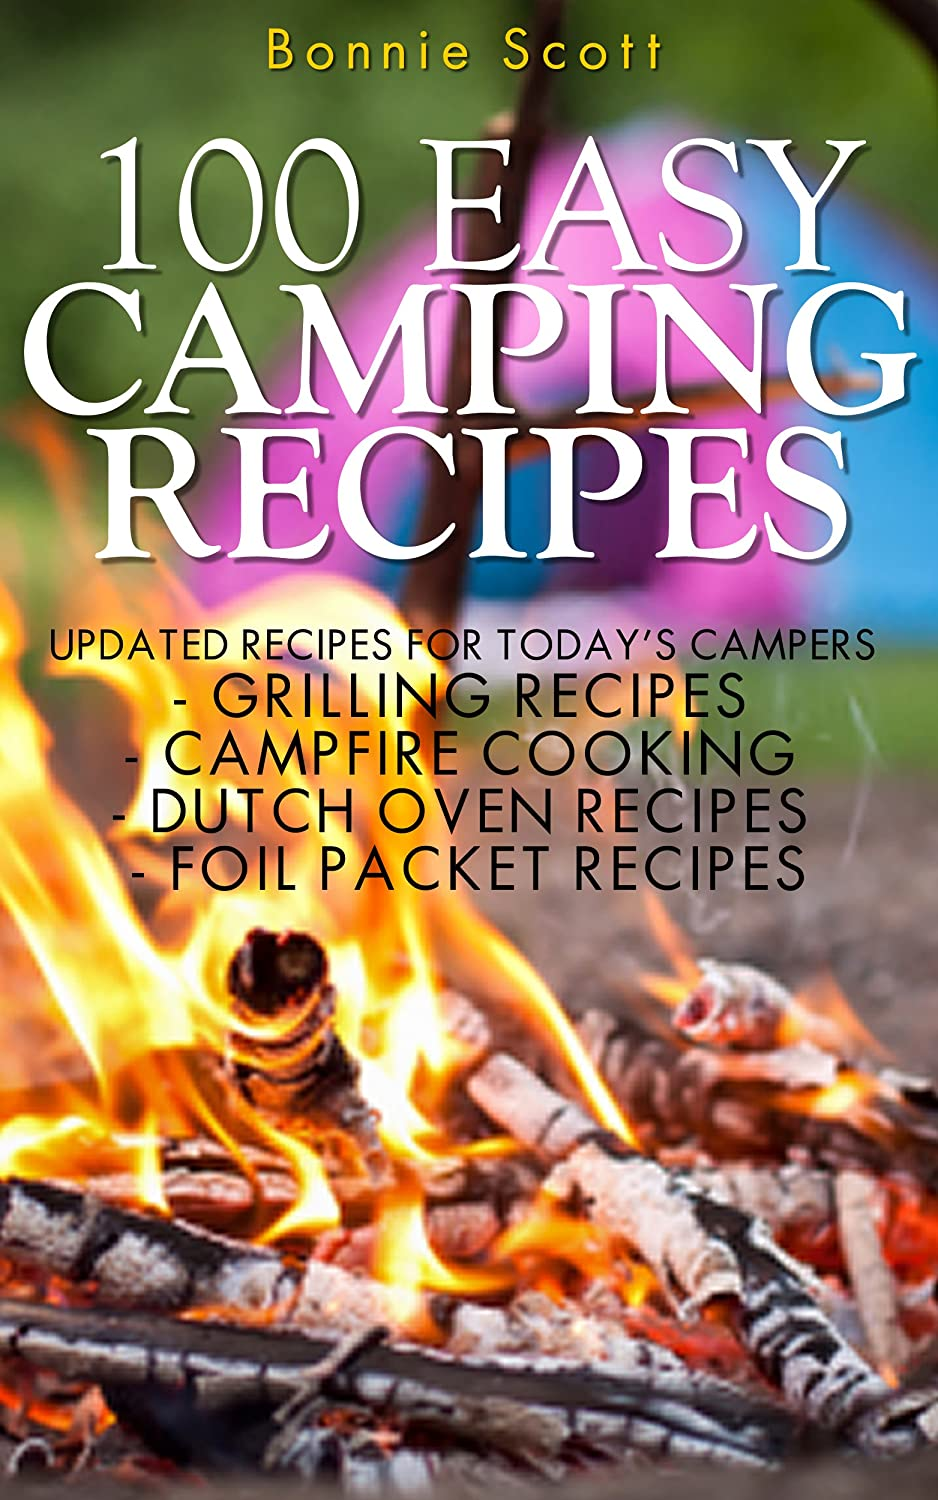 http://www.amazon.com/Easy-Camping-Recipes-Bonnie-Scott-ebook/dp/B008A8W5IE/ref=as_sl_pc_ss_til?tag=lettfromahome-20&linkCode=w01&linkId=MOLZRKVXVNFNGGZJ&creativeASIN=B008A8W5IE